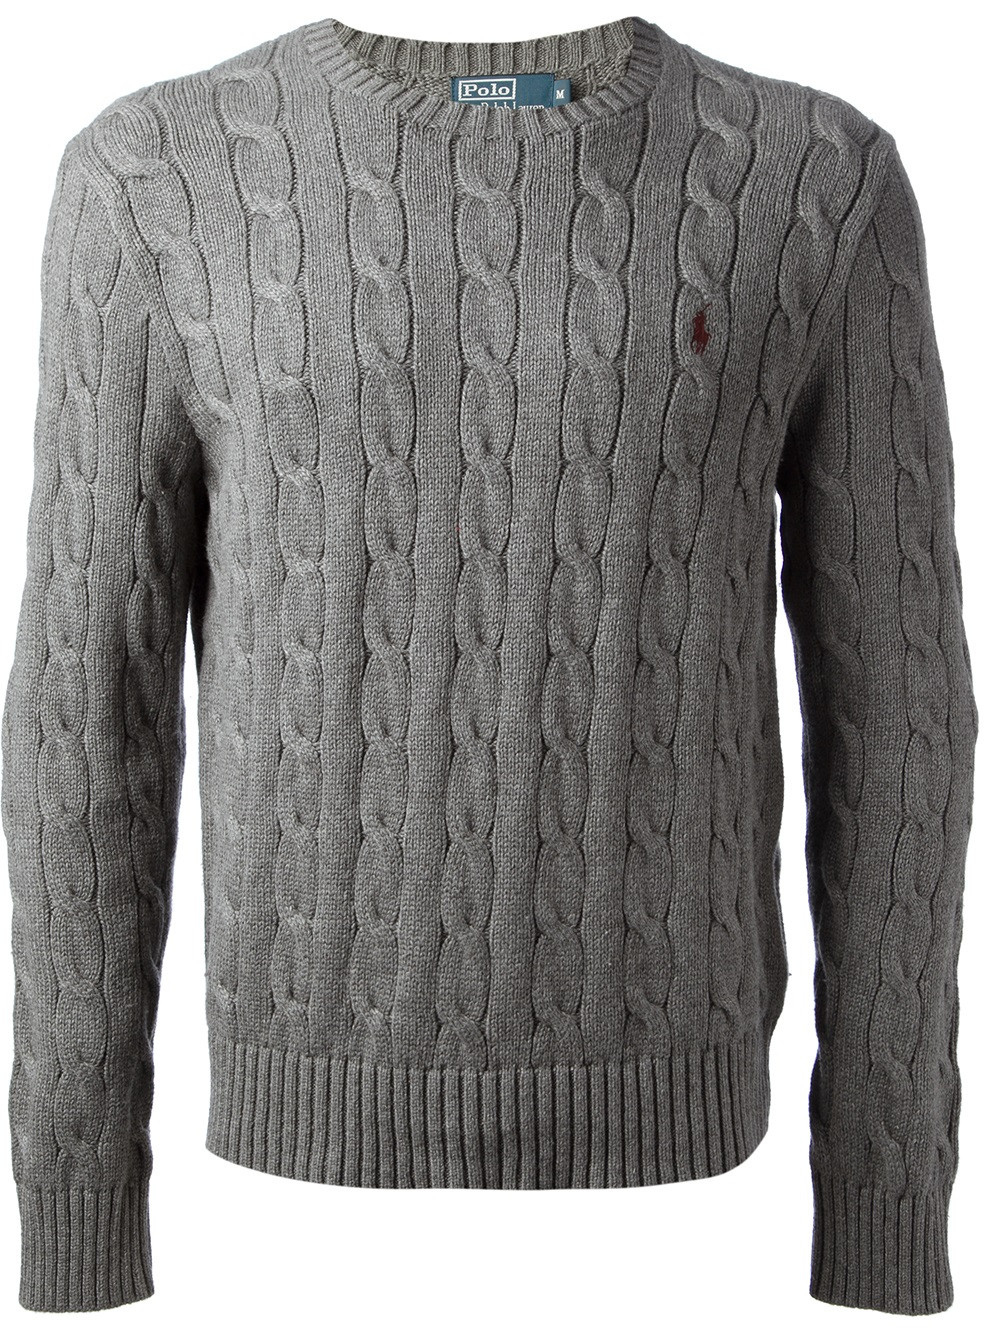 Lyst Polo Ralph Lauren Cable Knit Sweater in Gray for Men